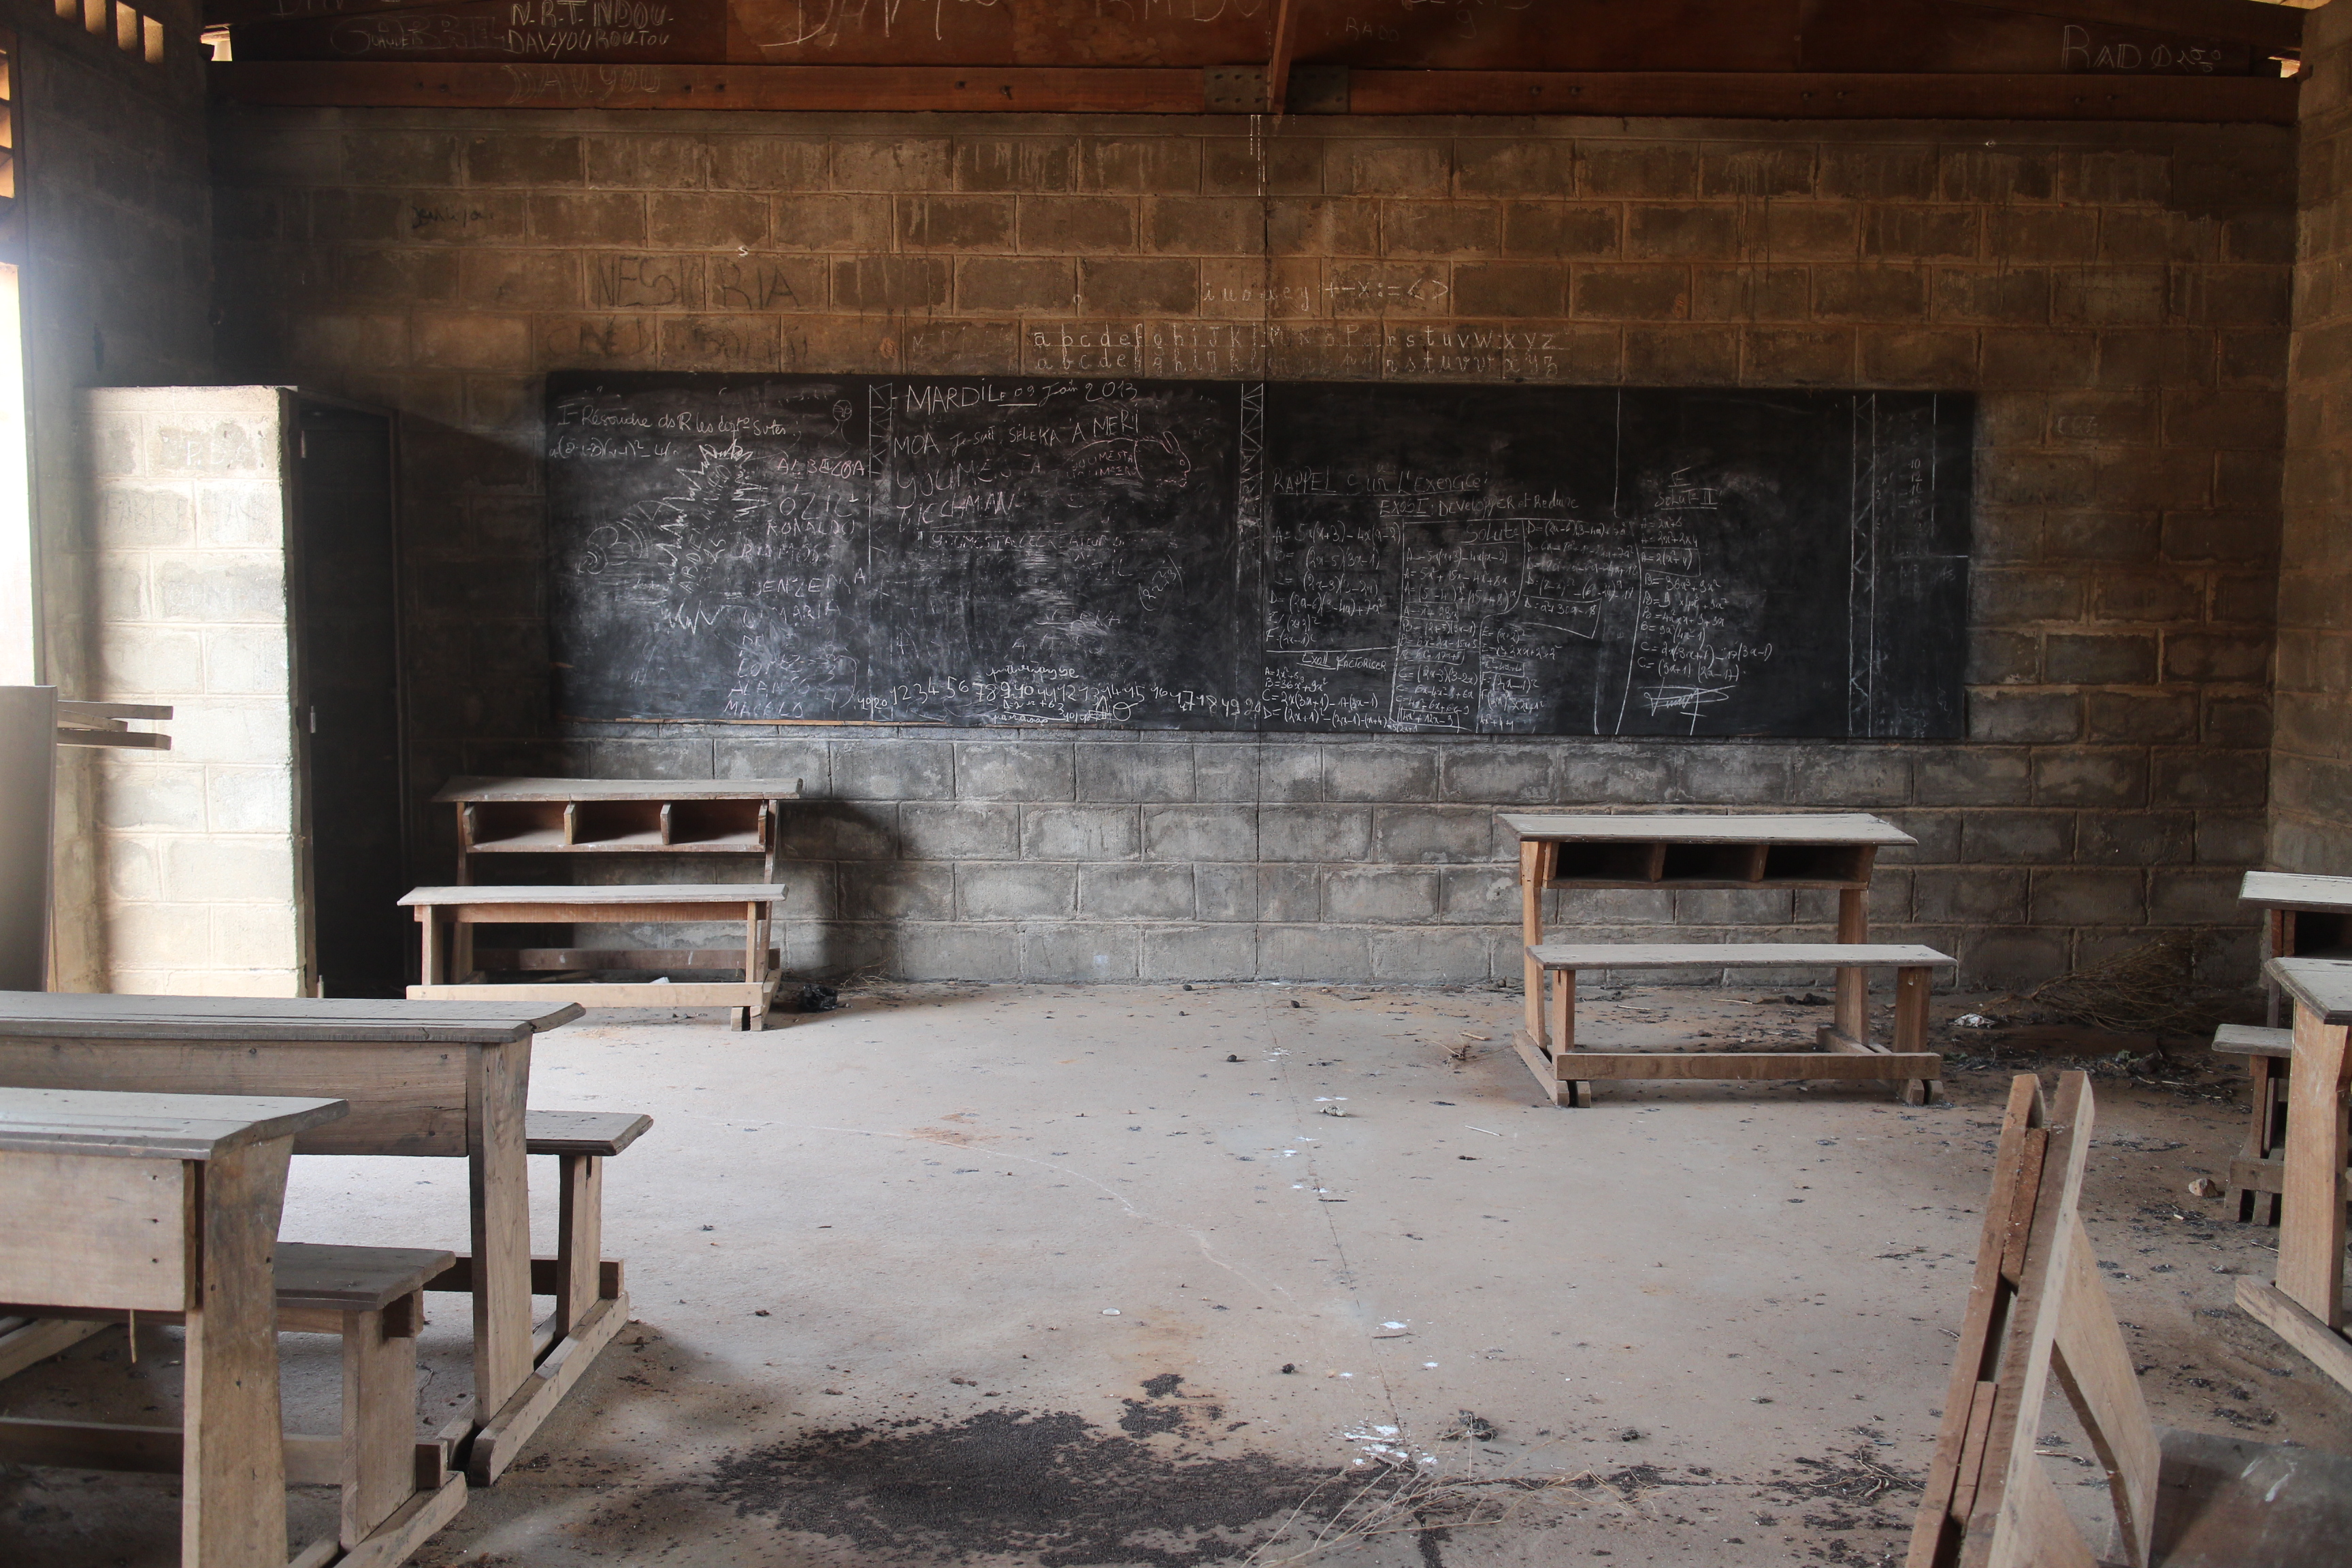 A classroom in Central African Republic - abandoned due to insecurity.